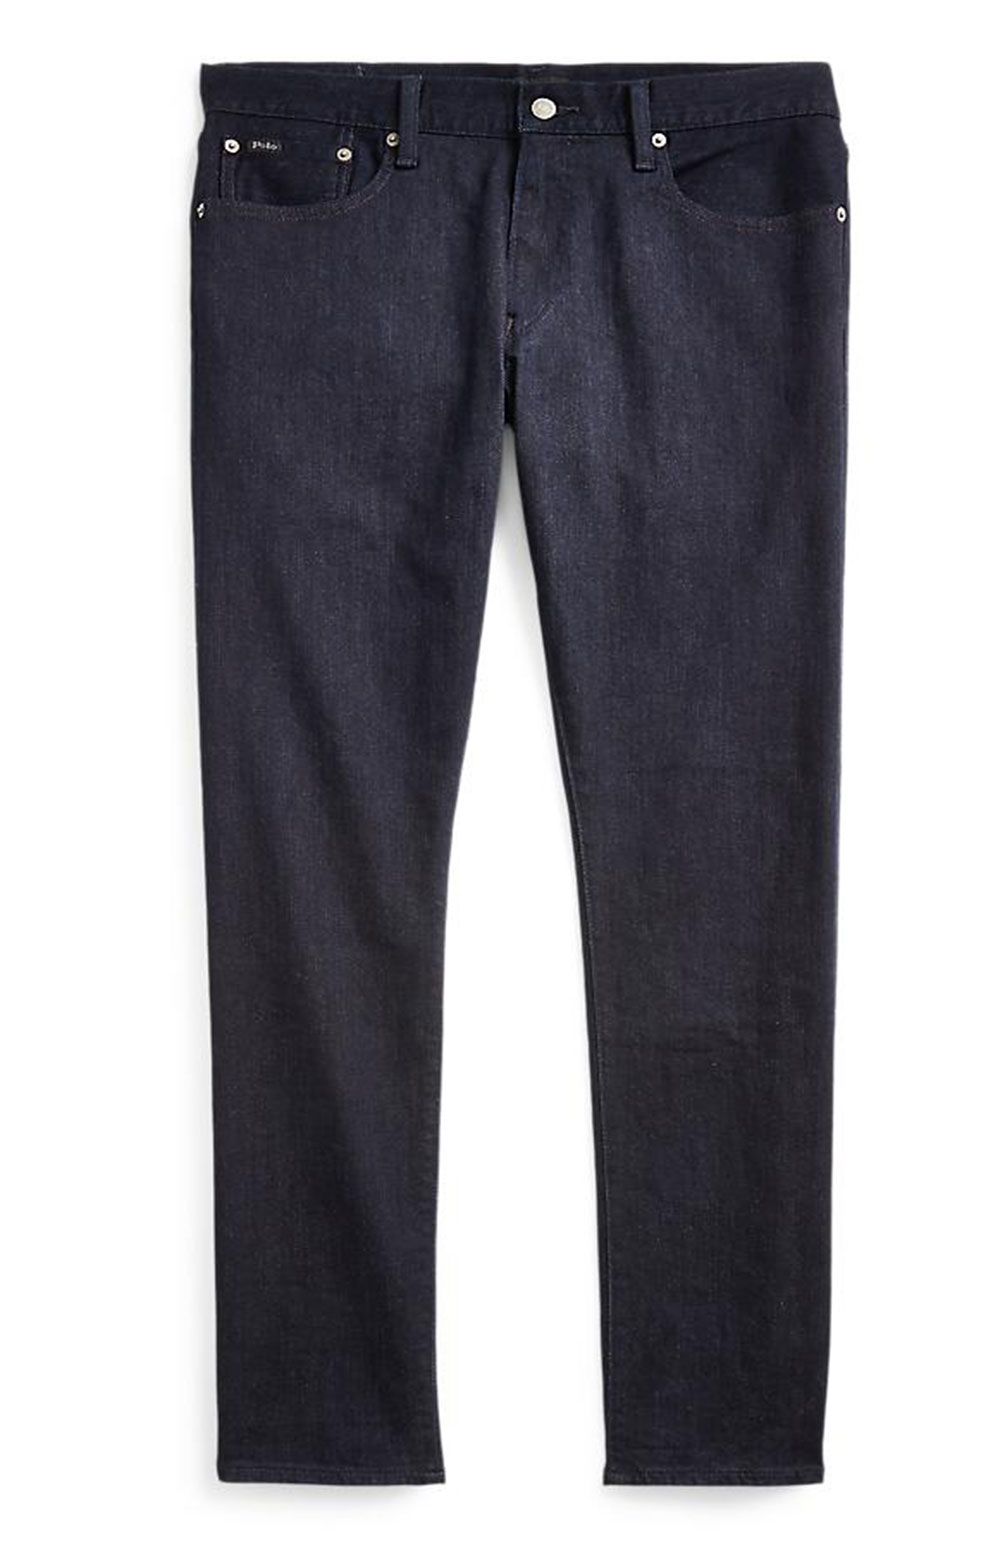 Varick Slim Straight Jeans - Miller Stretch BSR 5